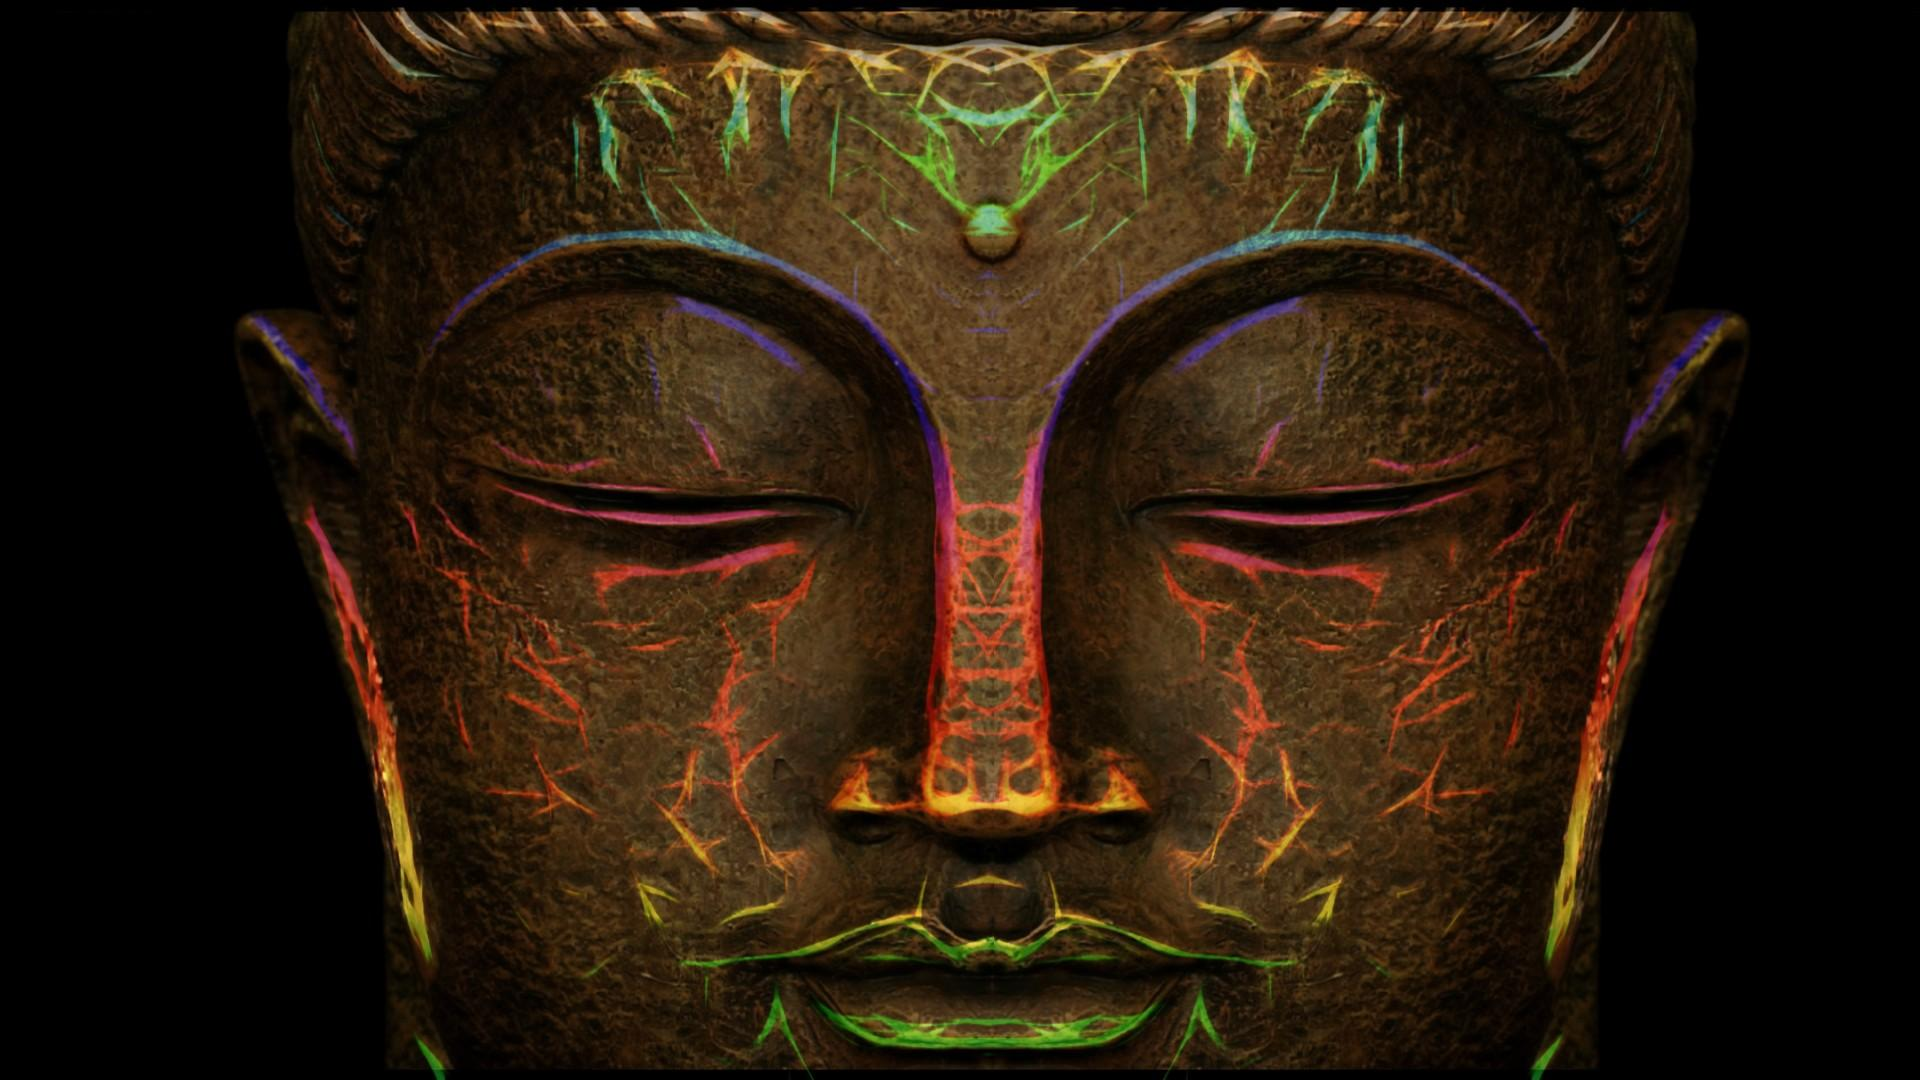 1920x1080 Buddha wallpaper | (75848)